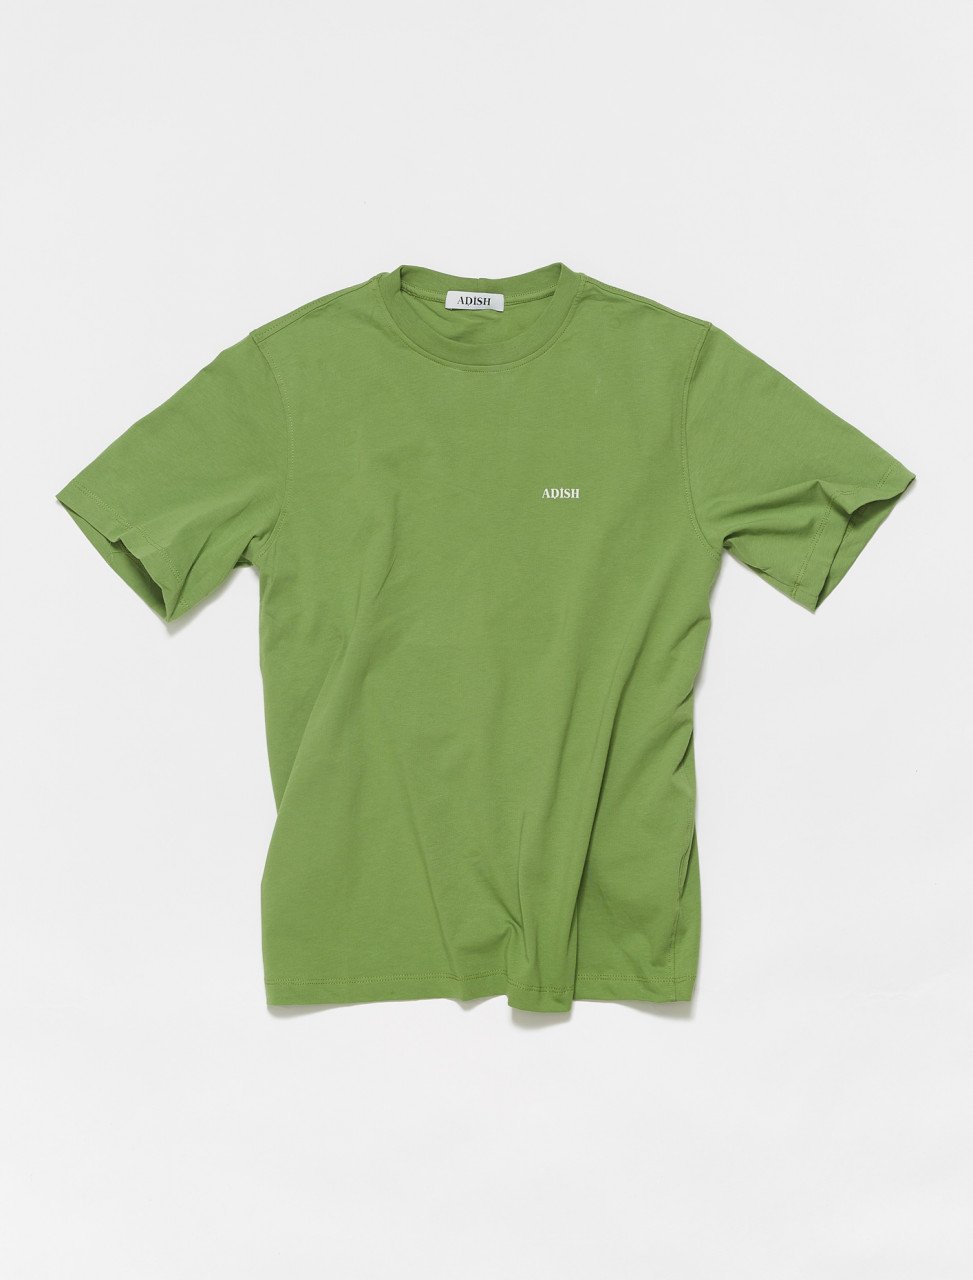 SS21-SSKLG003 ADISH SHORT SLEEVE KHALIL LOGO T SHIRT GREEN